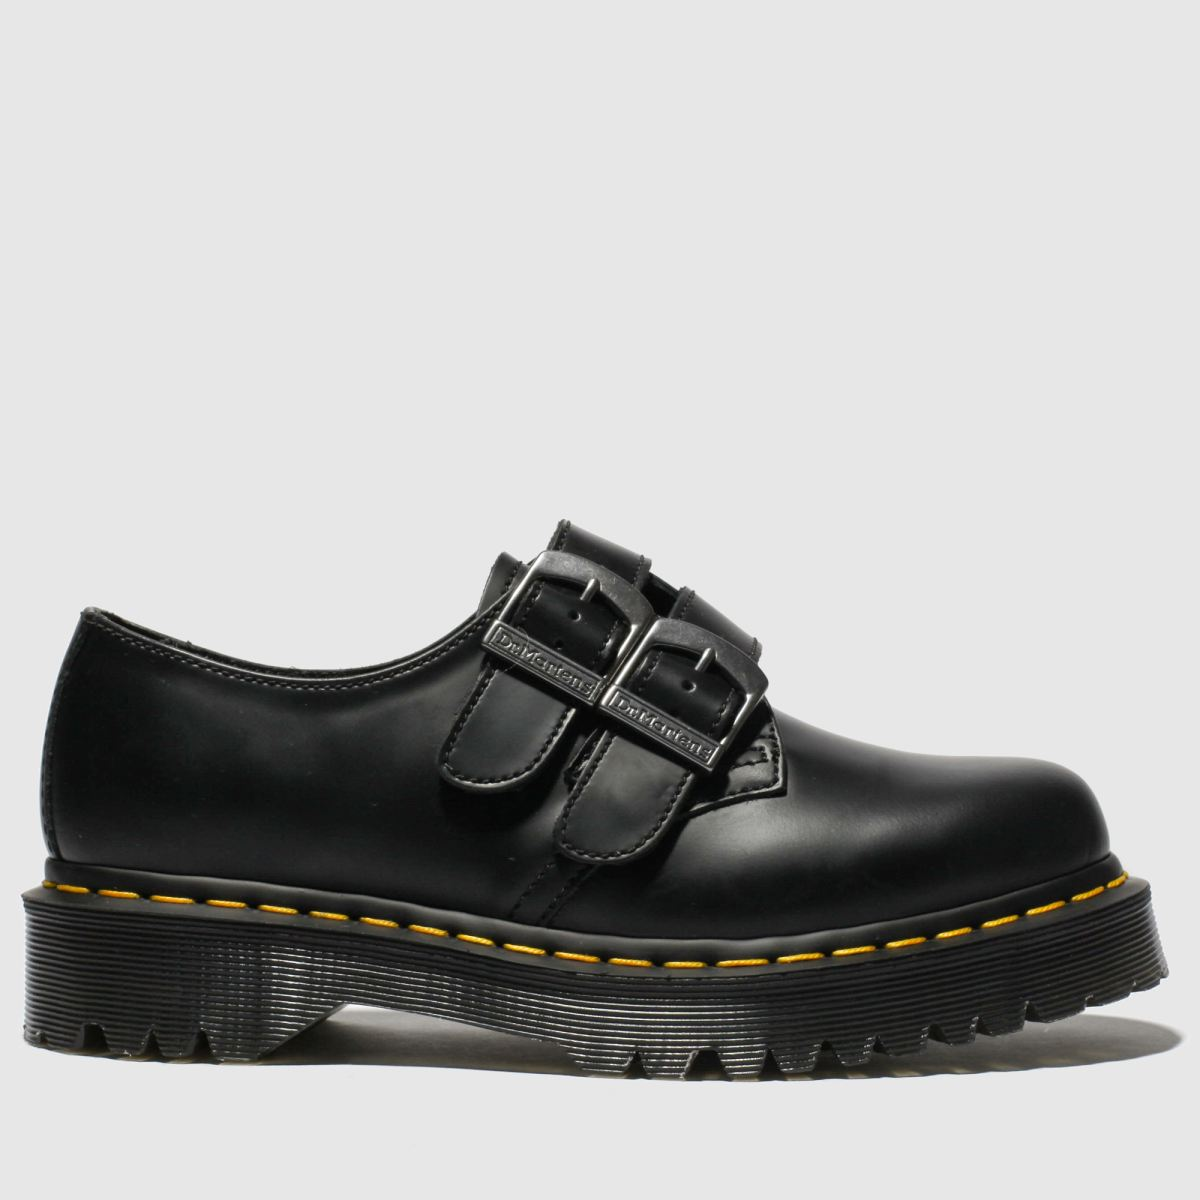 Dr Martens Black 1461 Alternative Flat Shoes